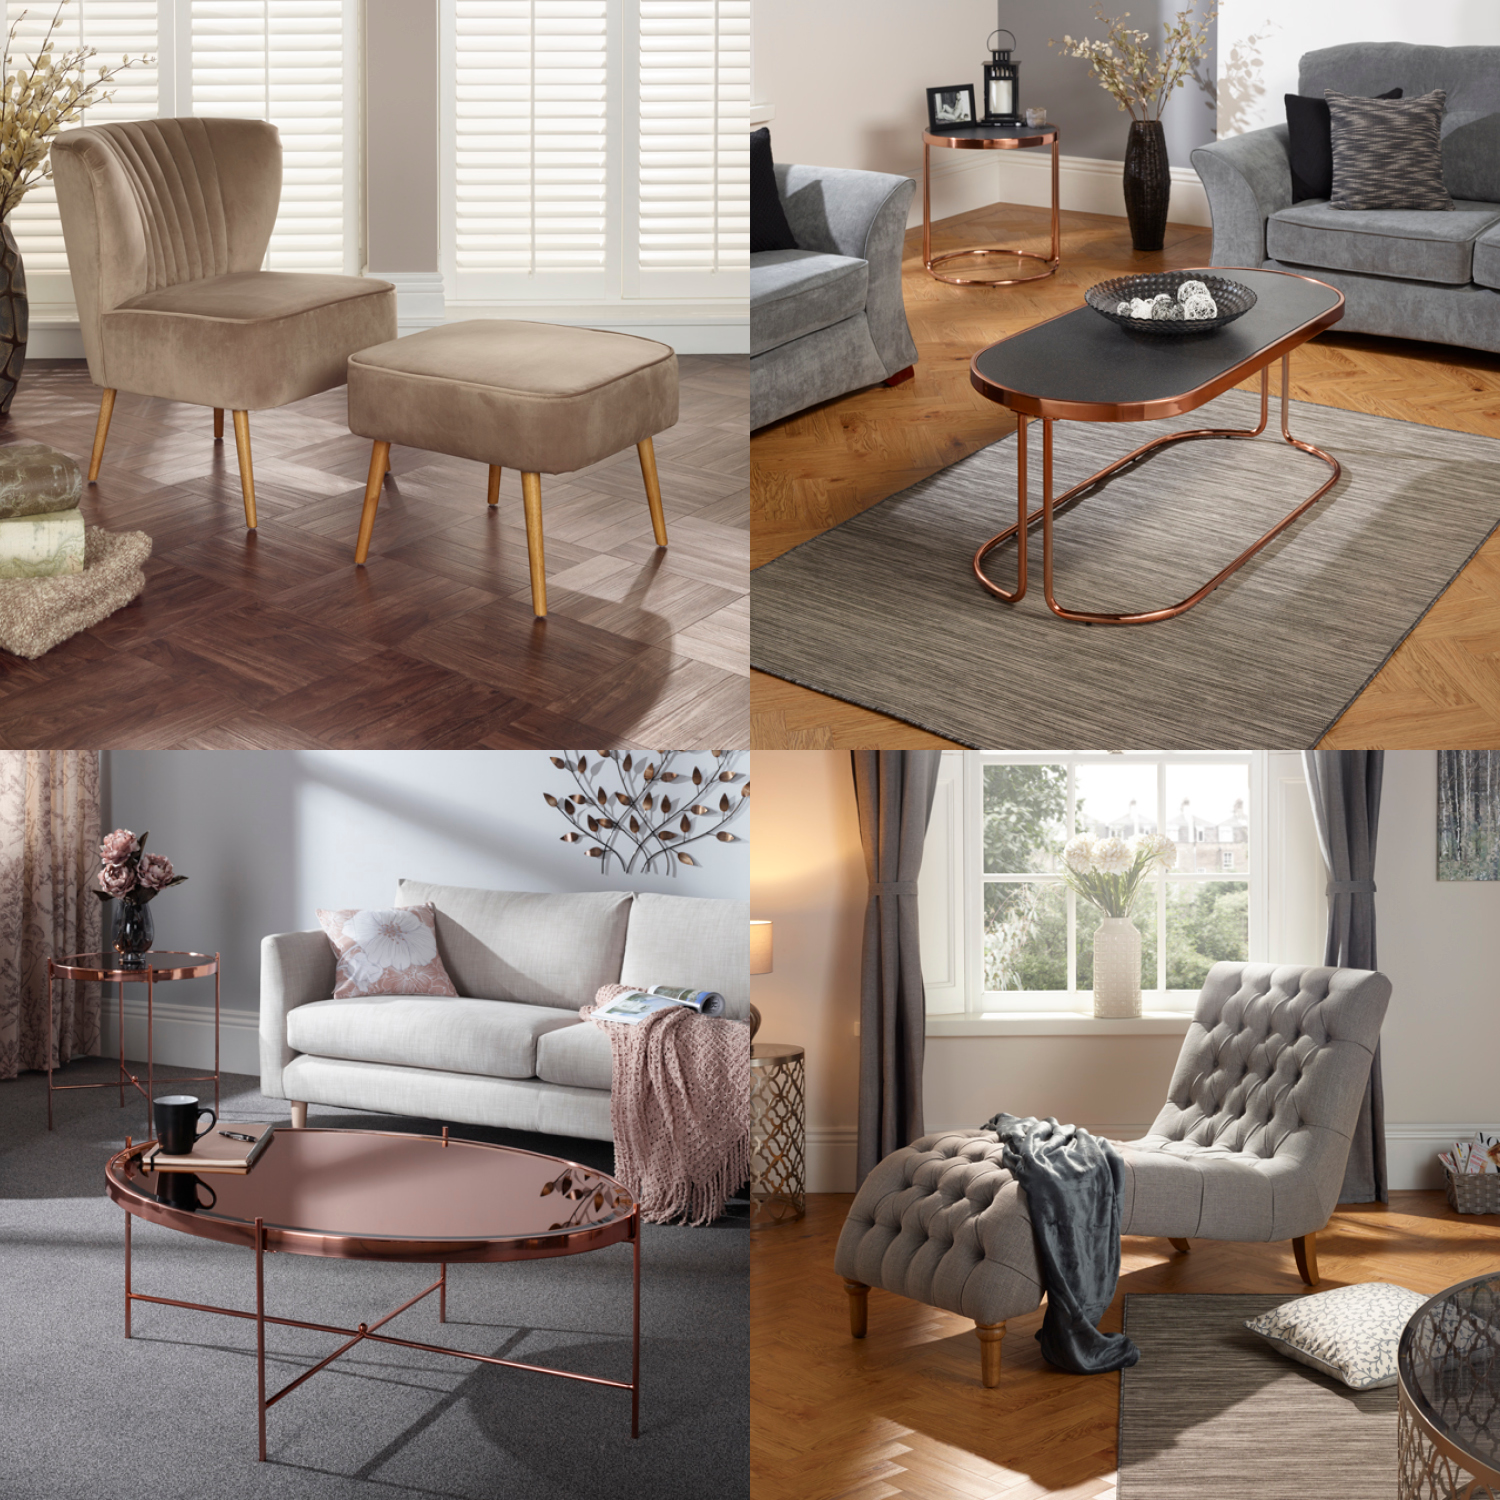 Furnish Your Home // 10% off everything - PROMO CODE: FRIDAY>> Shop at Furnish Your Home